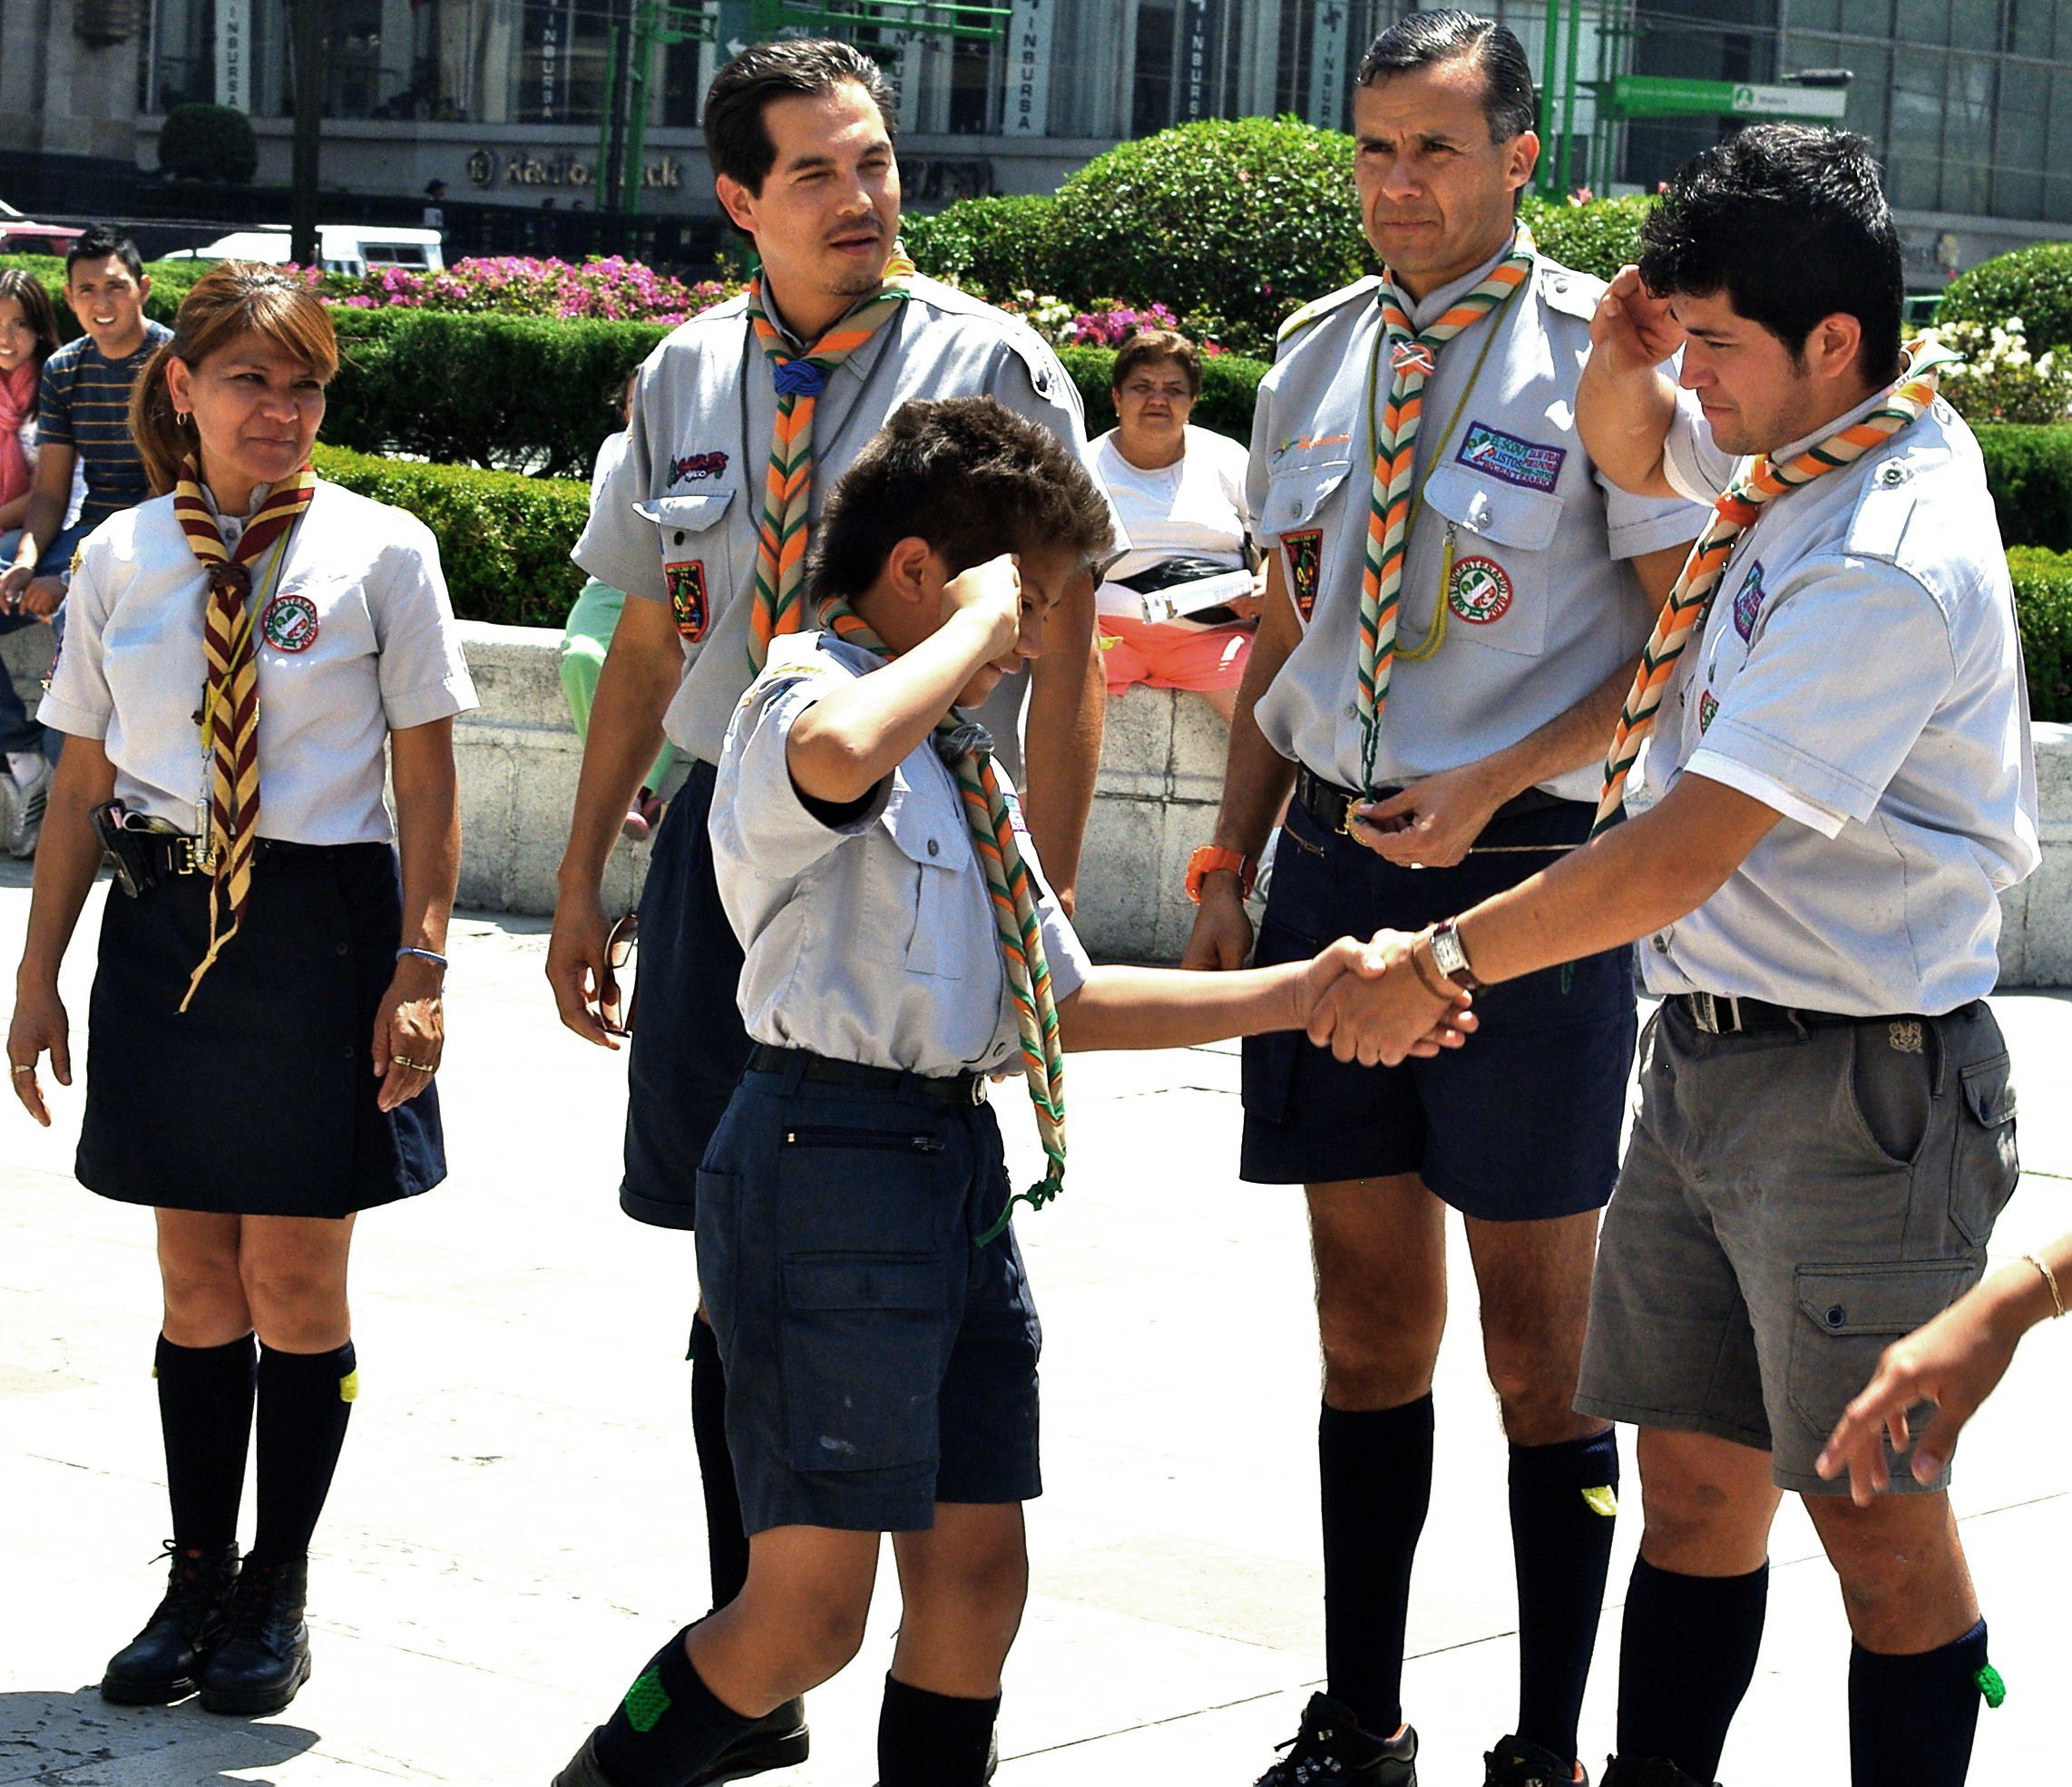 scout leader - wikipedia